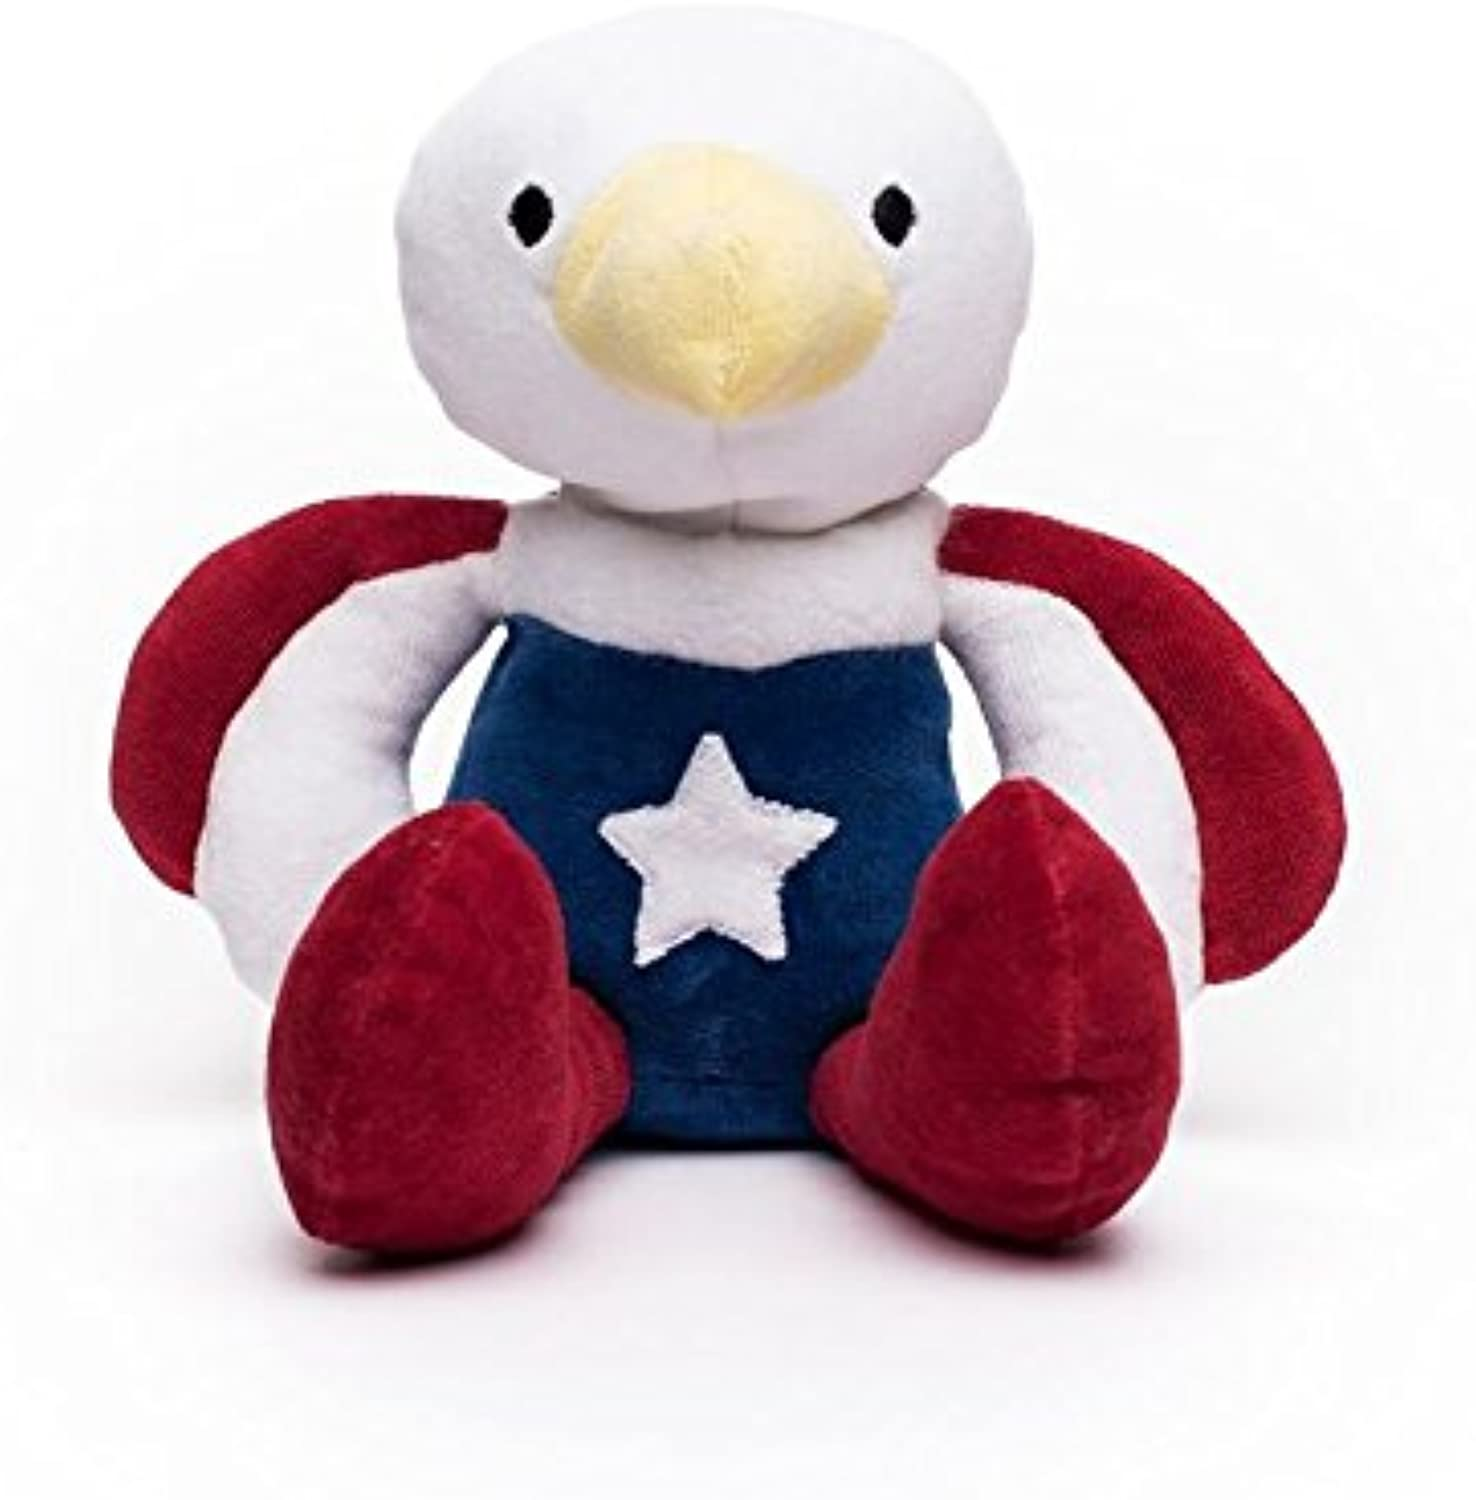 Bears For Humanity American Eagle Stuffed Animal - Organic Eagle is a Non-Toxic, Patriotic Plush 12  Toy